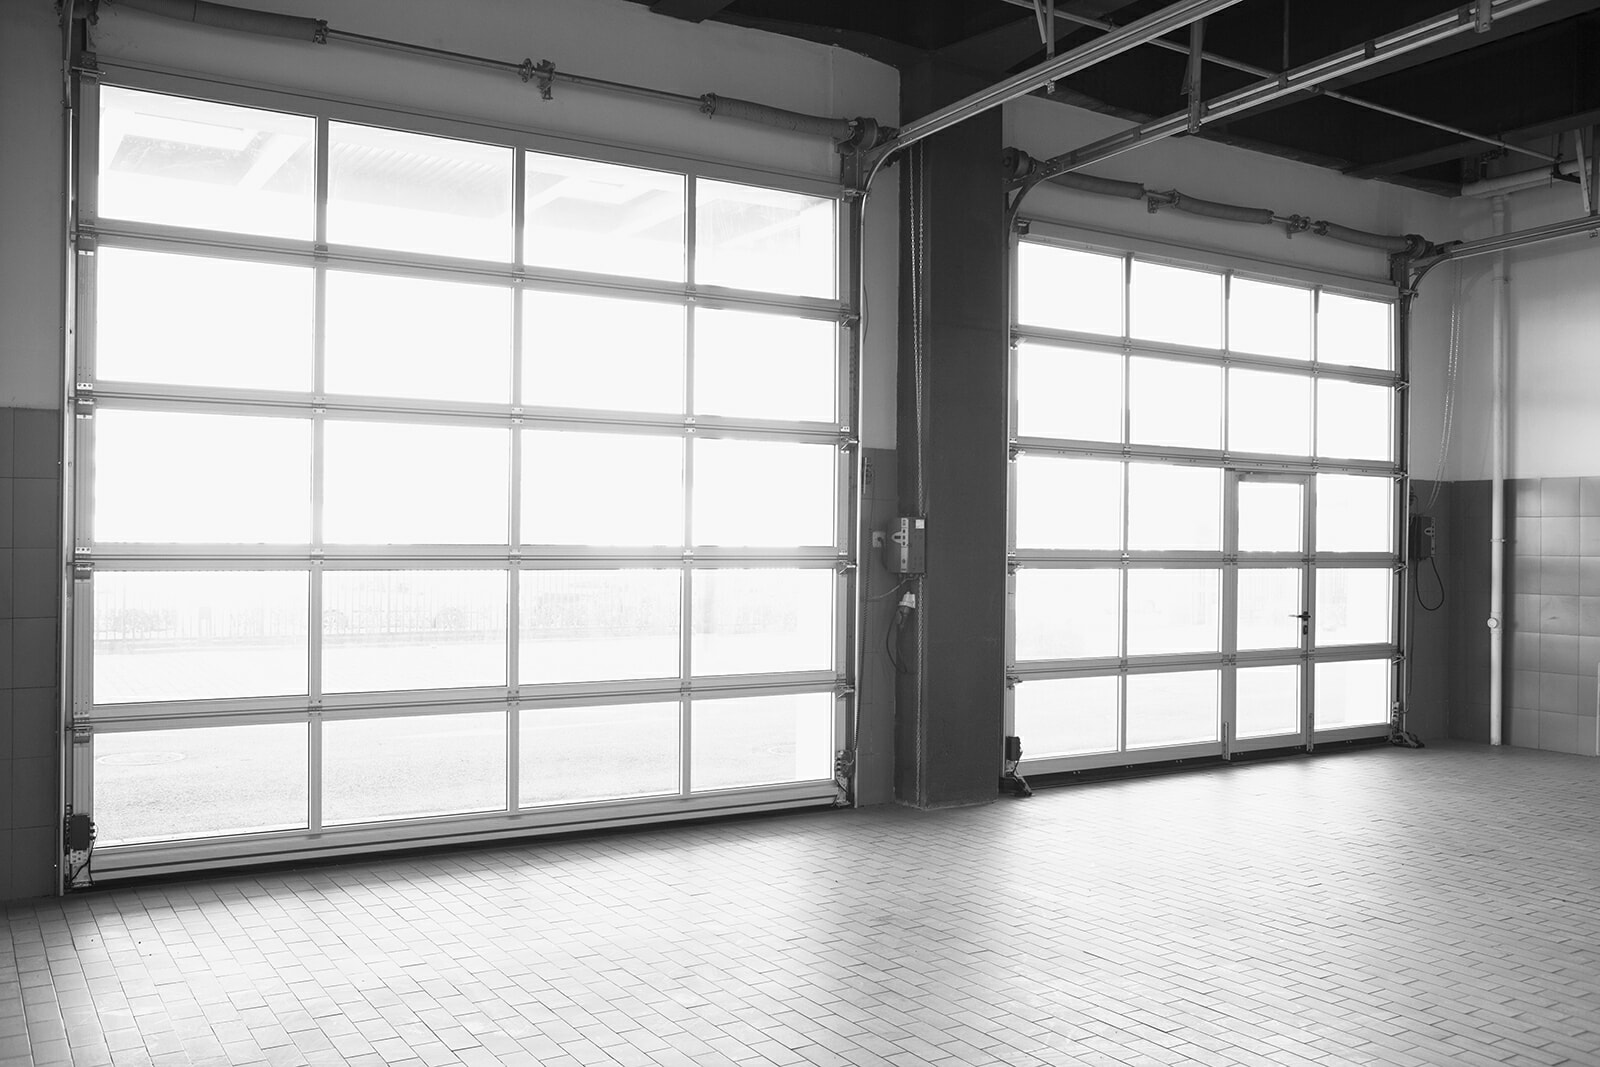 Inside an empty mechanic garage with garage doors made of all glass closed